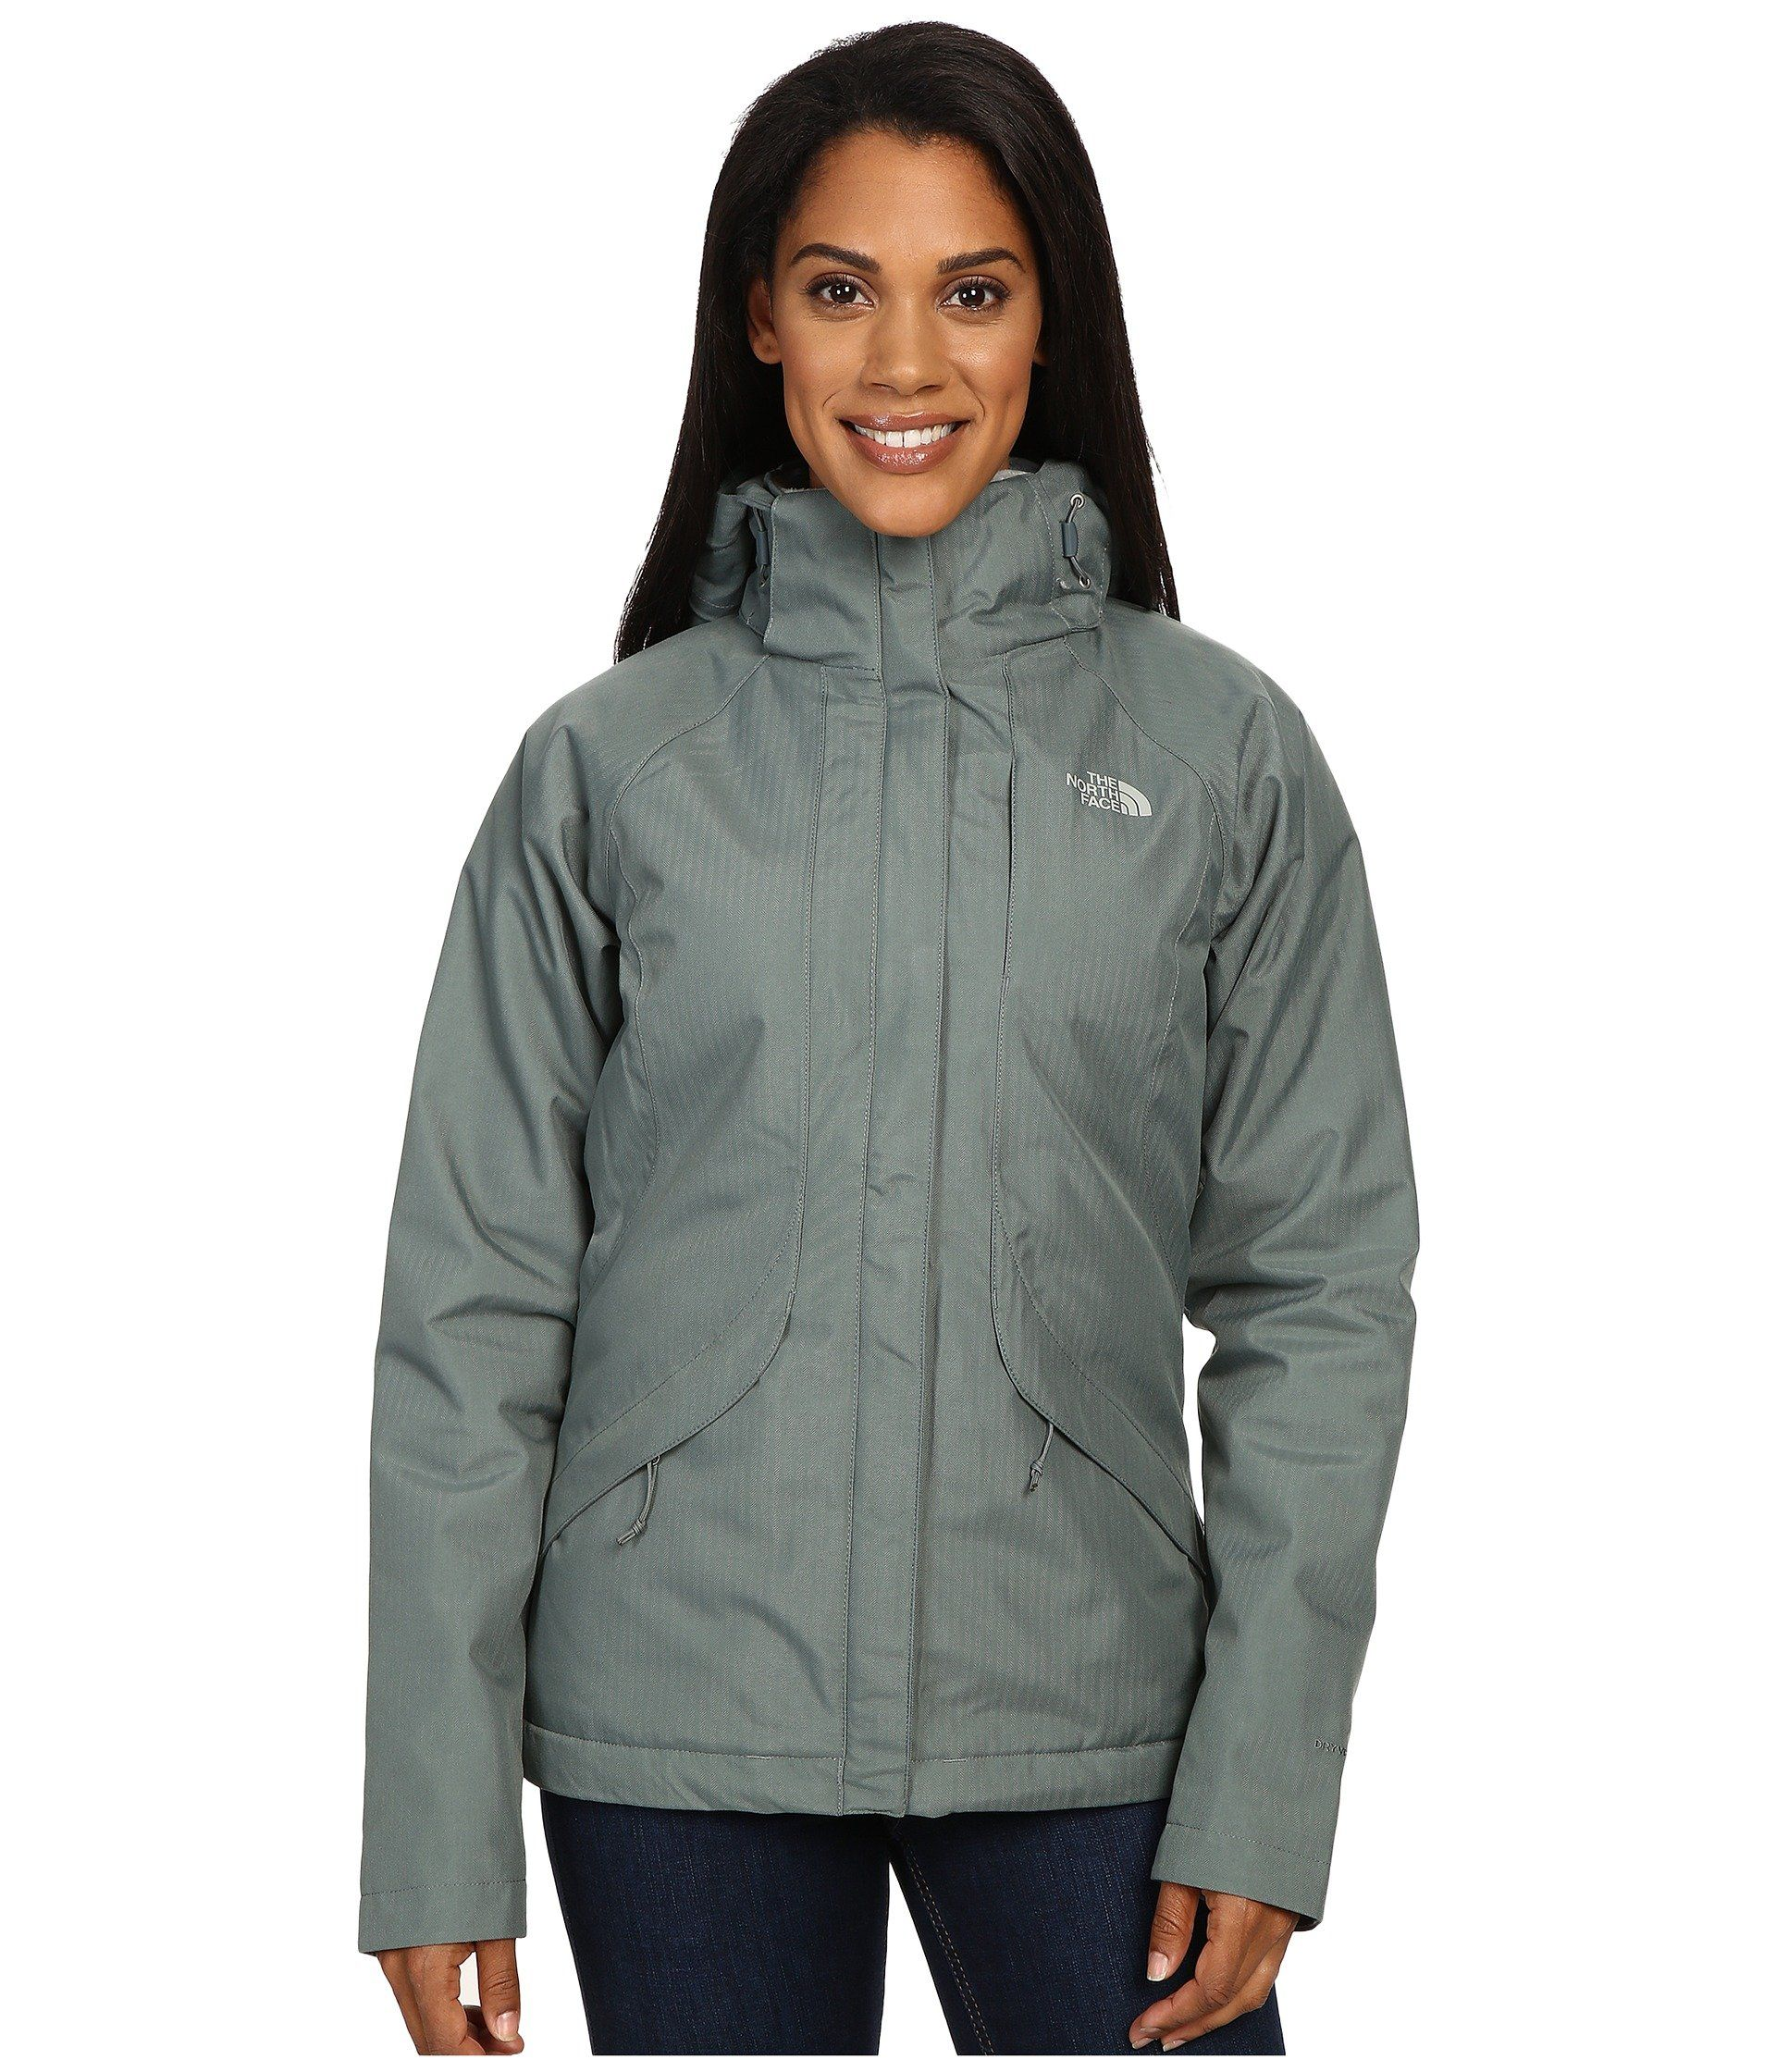 The North Face Inlux Insulated Jacket Women S Balsam Green Large Waterproof Jacket With Lightweight Heatseeke Insulated Jacket Women Insulated Jackets Jackets